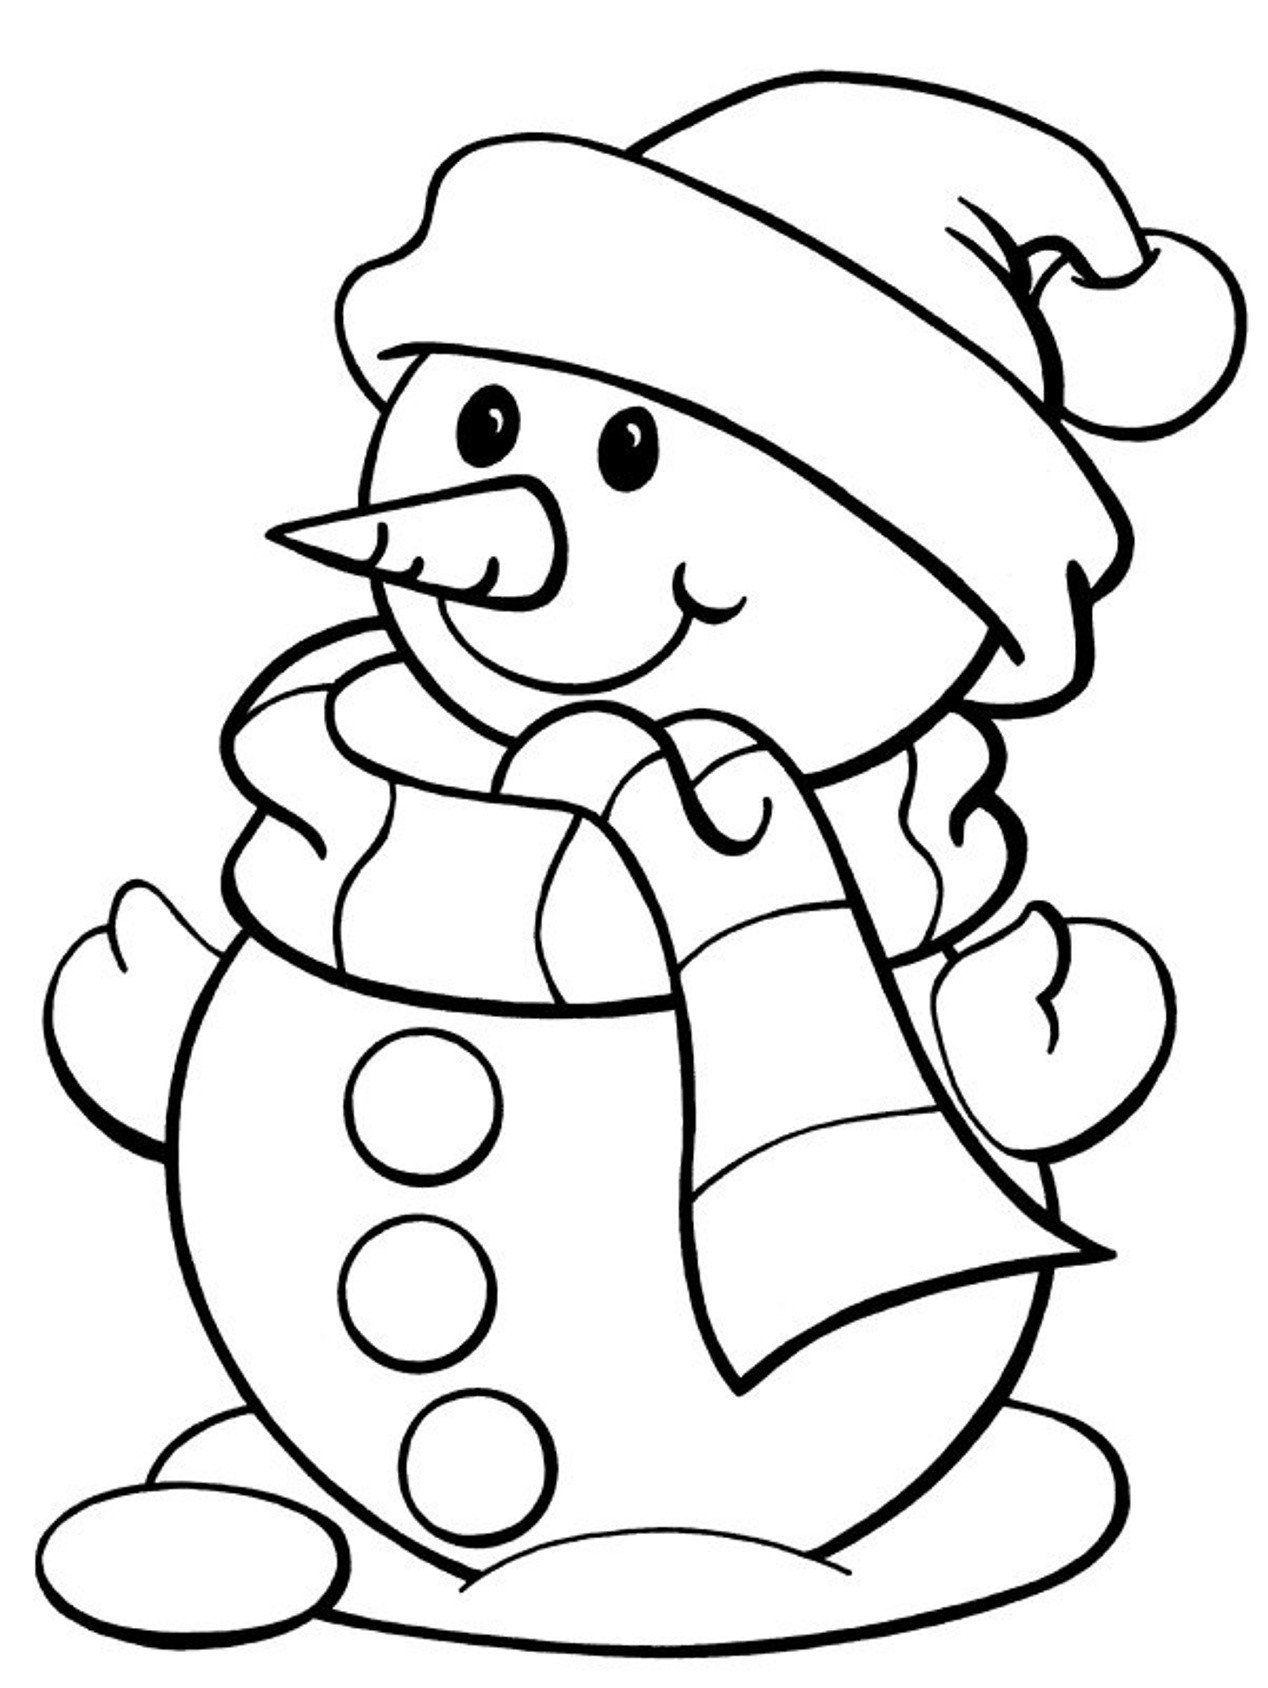 Winter Coloring Pages Coloring Pages Winter Preschool Coloring Pages Christmas Coloring Pages